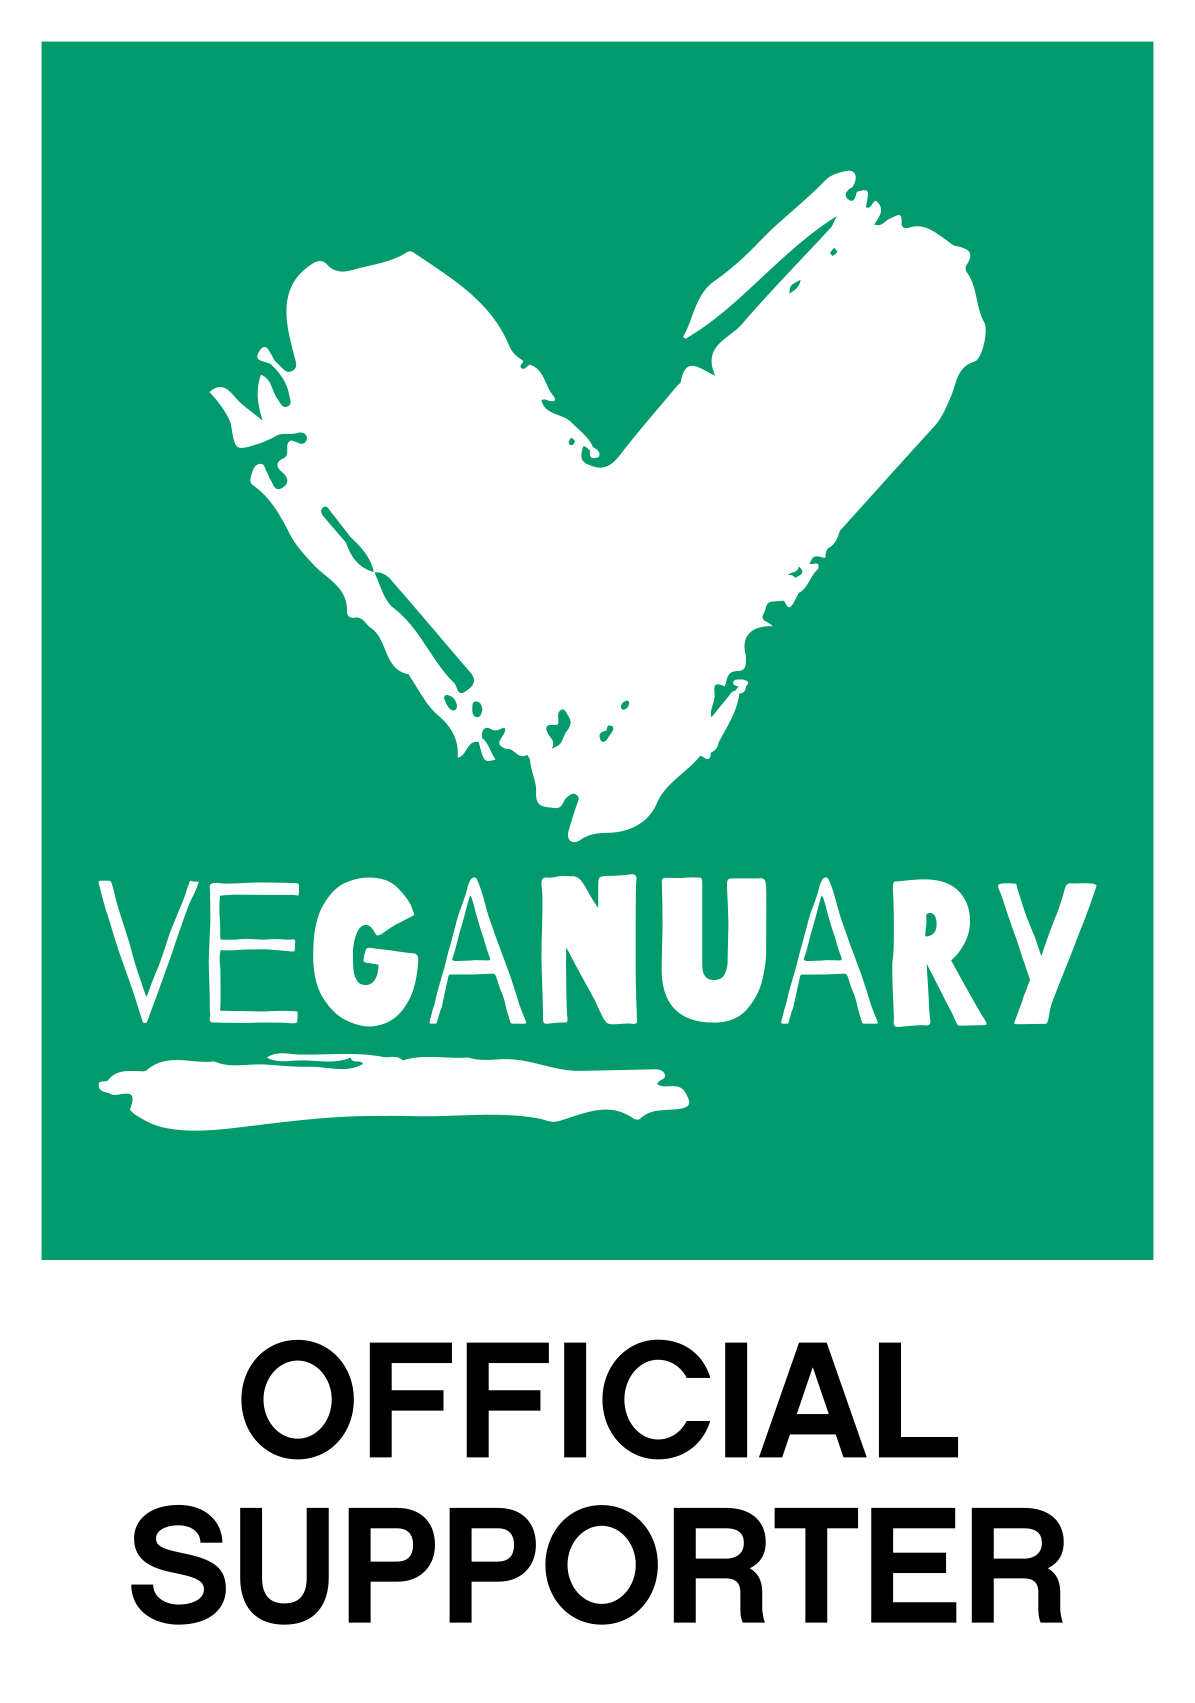 veganuary Official Support Badge 6